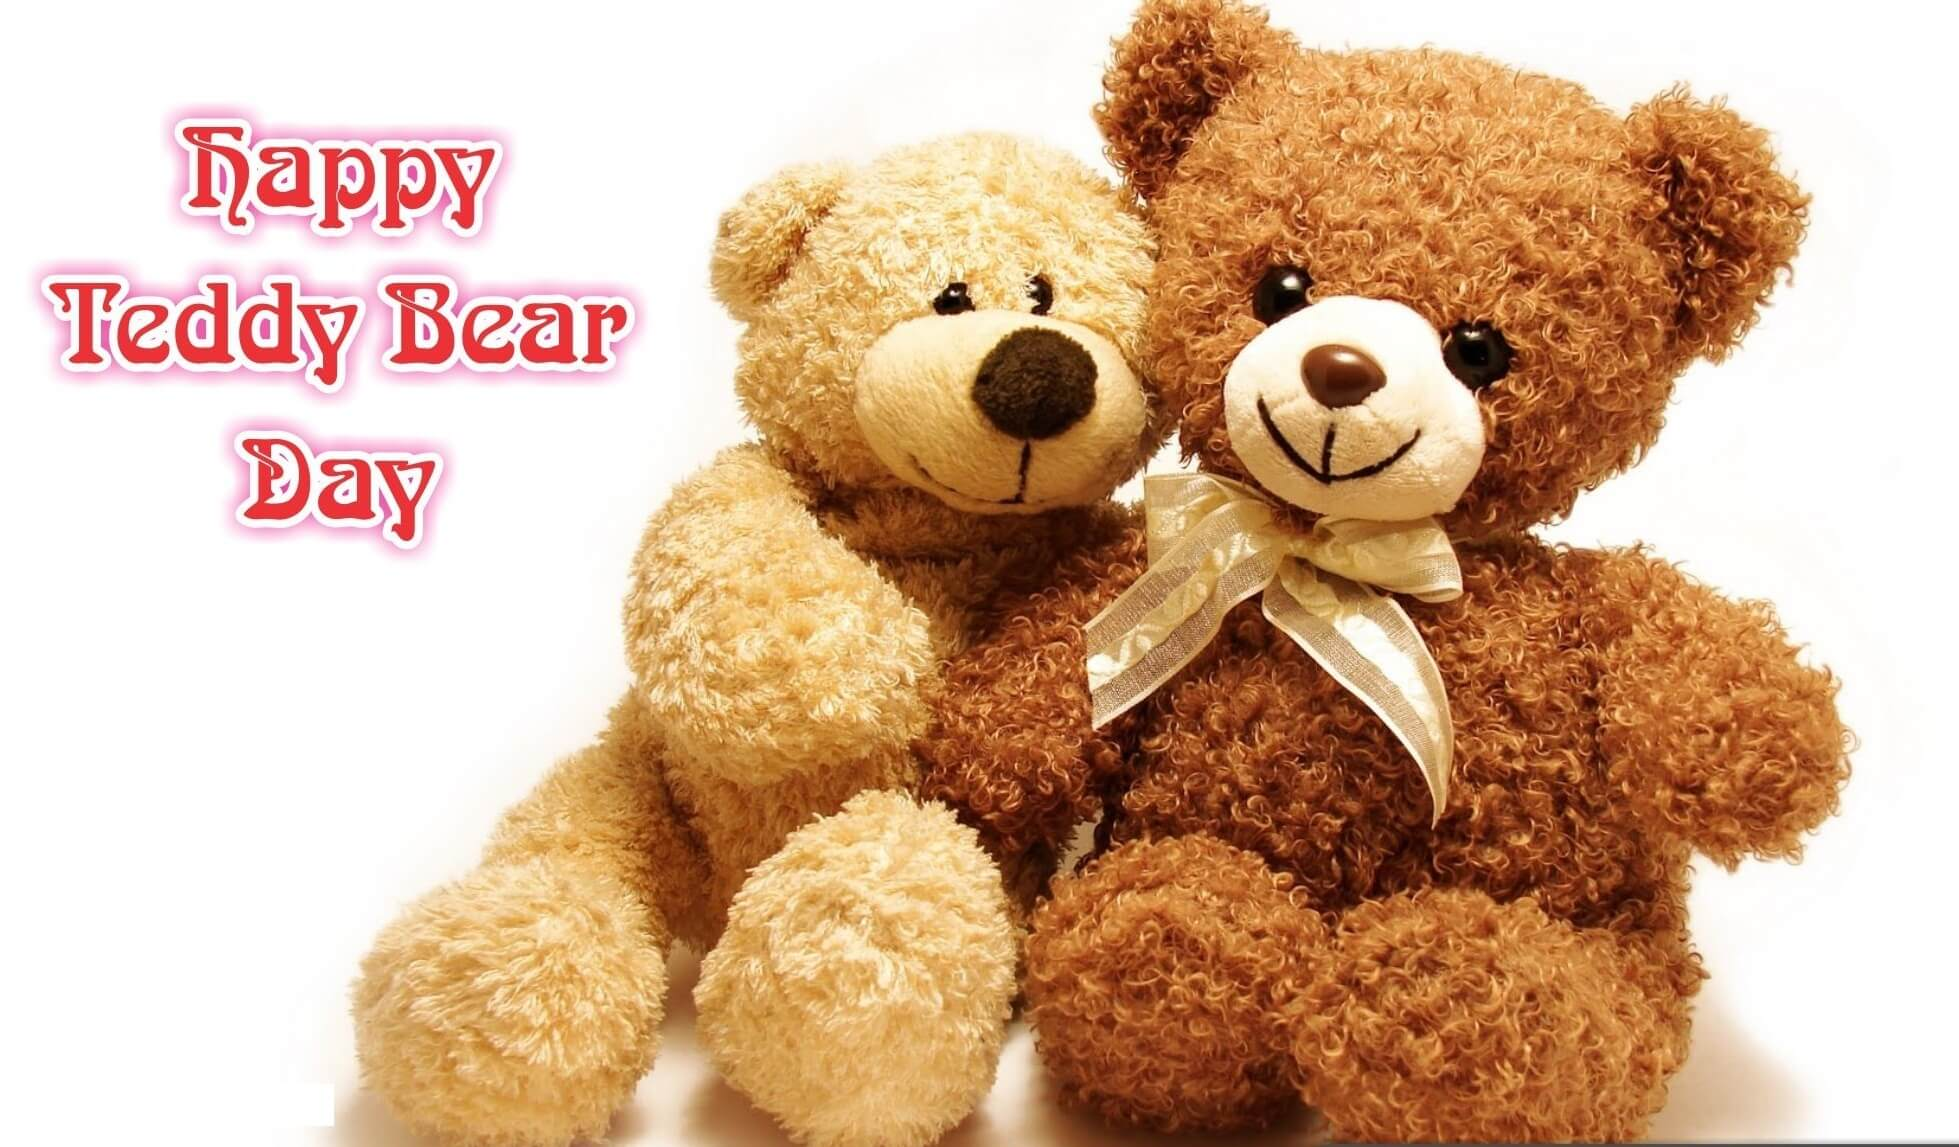 happy teddy day wishes bear couples image february 10th hd wallpaper